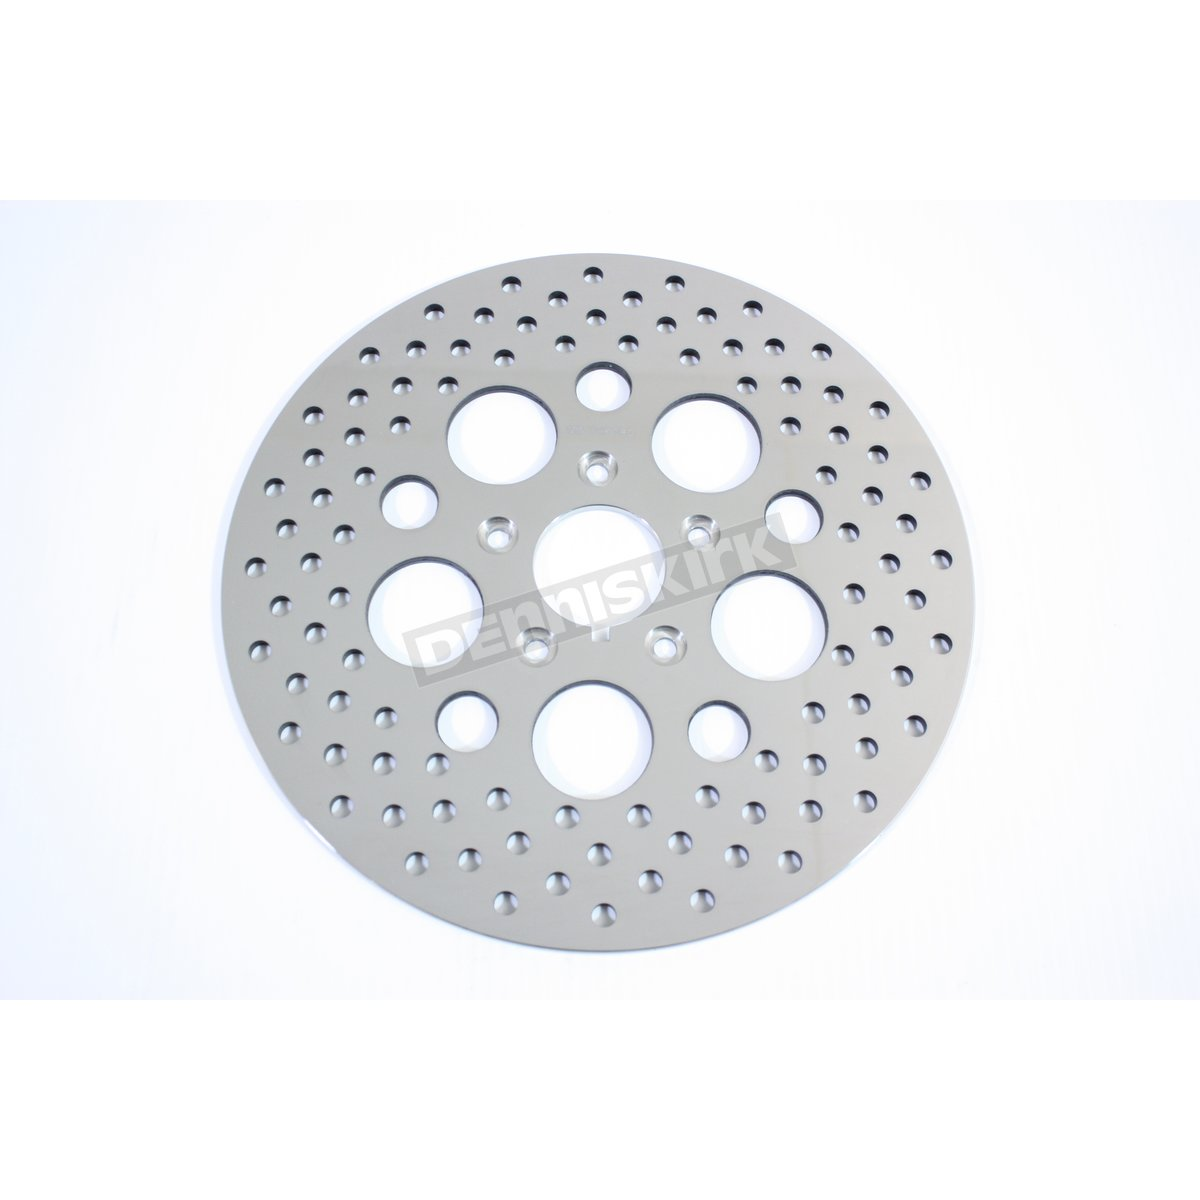 """10/"""" Front or Rear Drilled Brake Disc,for Harley Davidson,by V-Twin"""